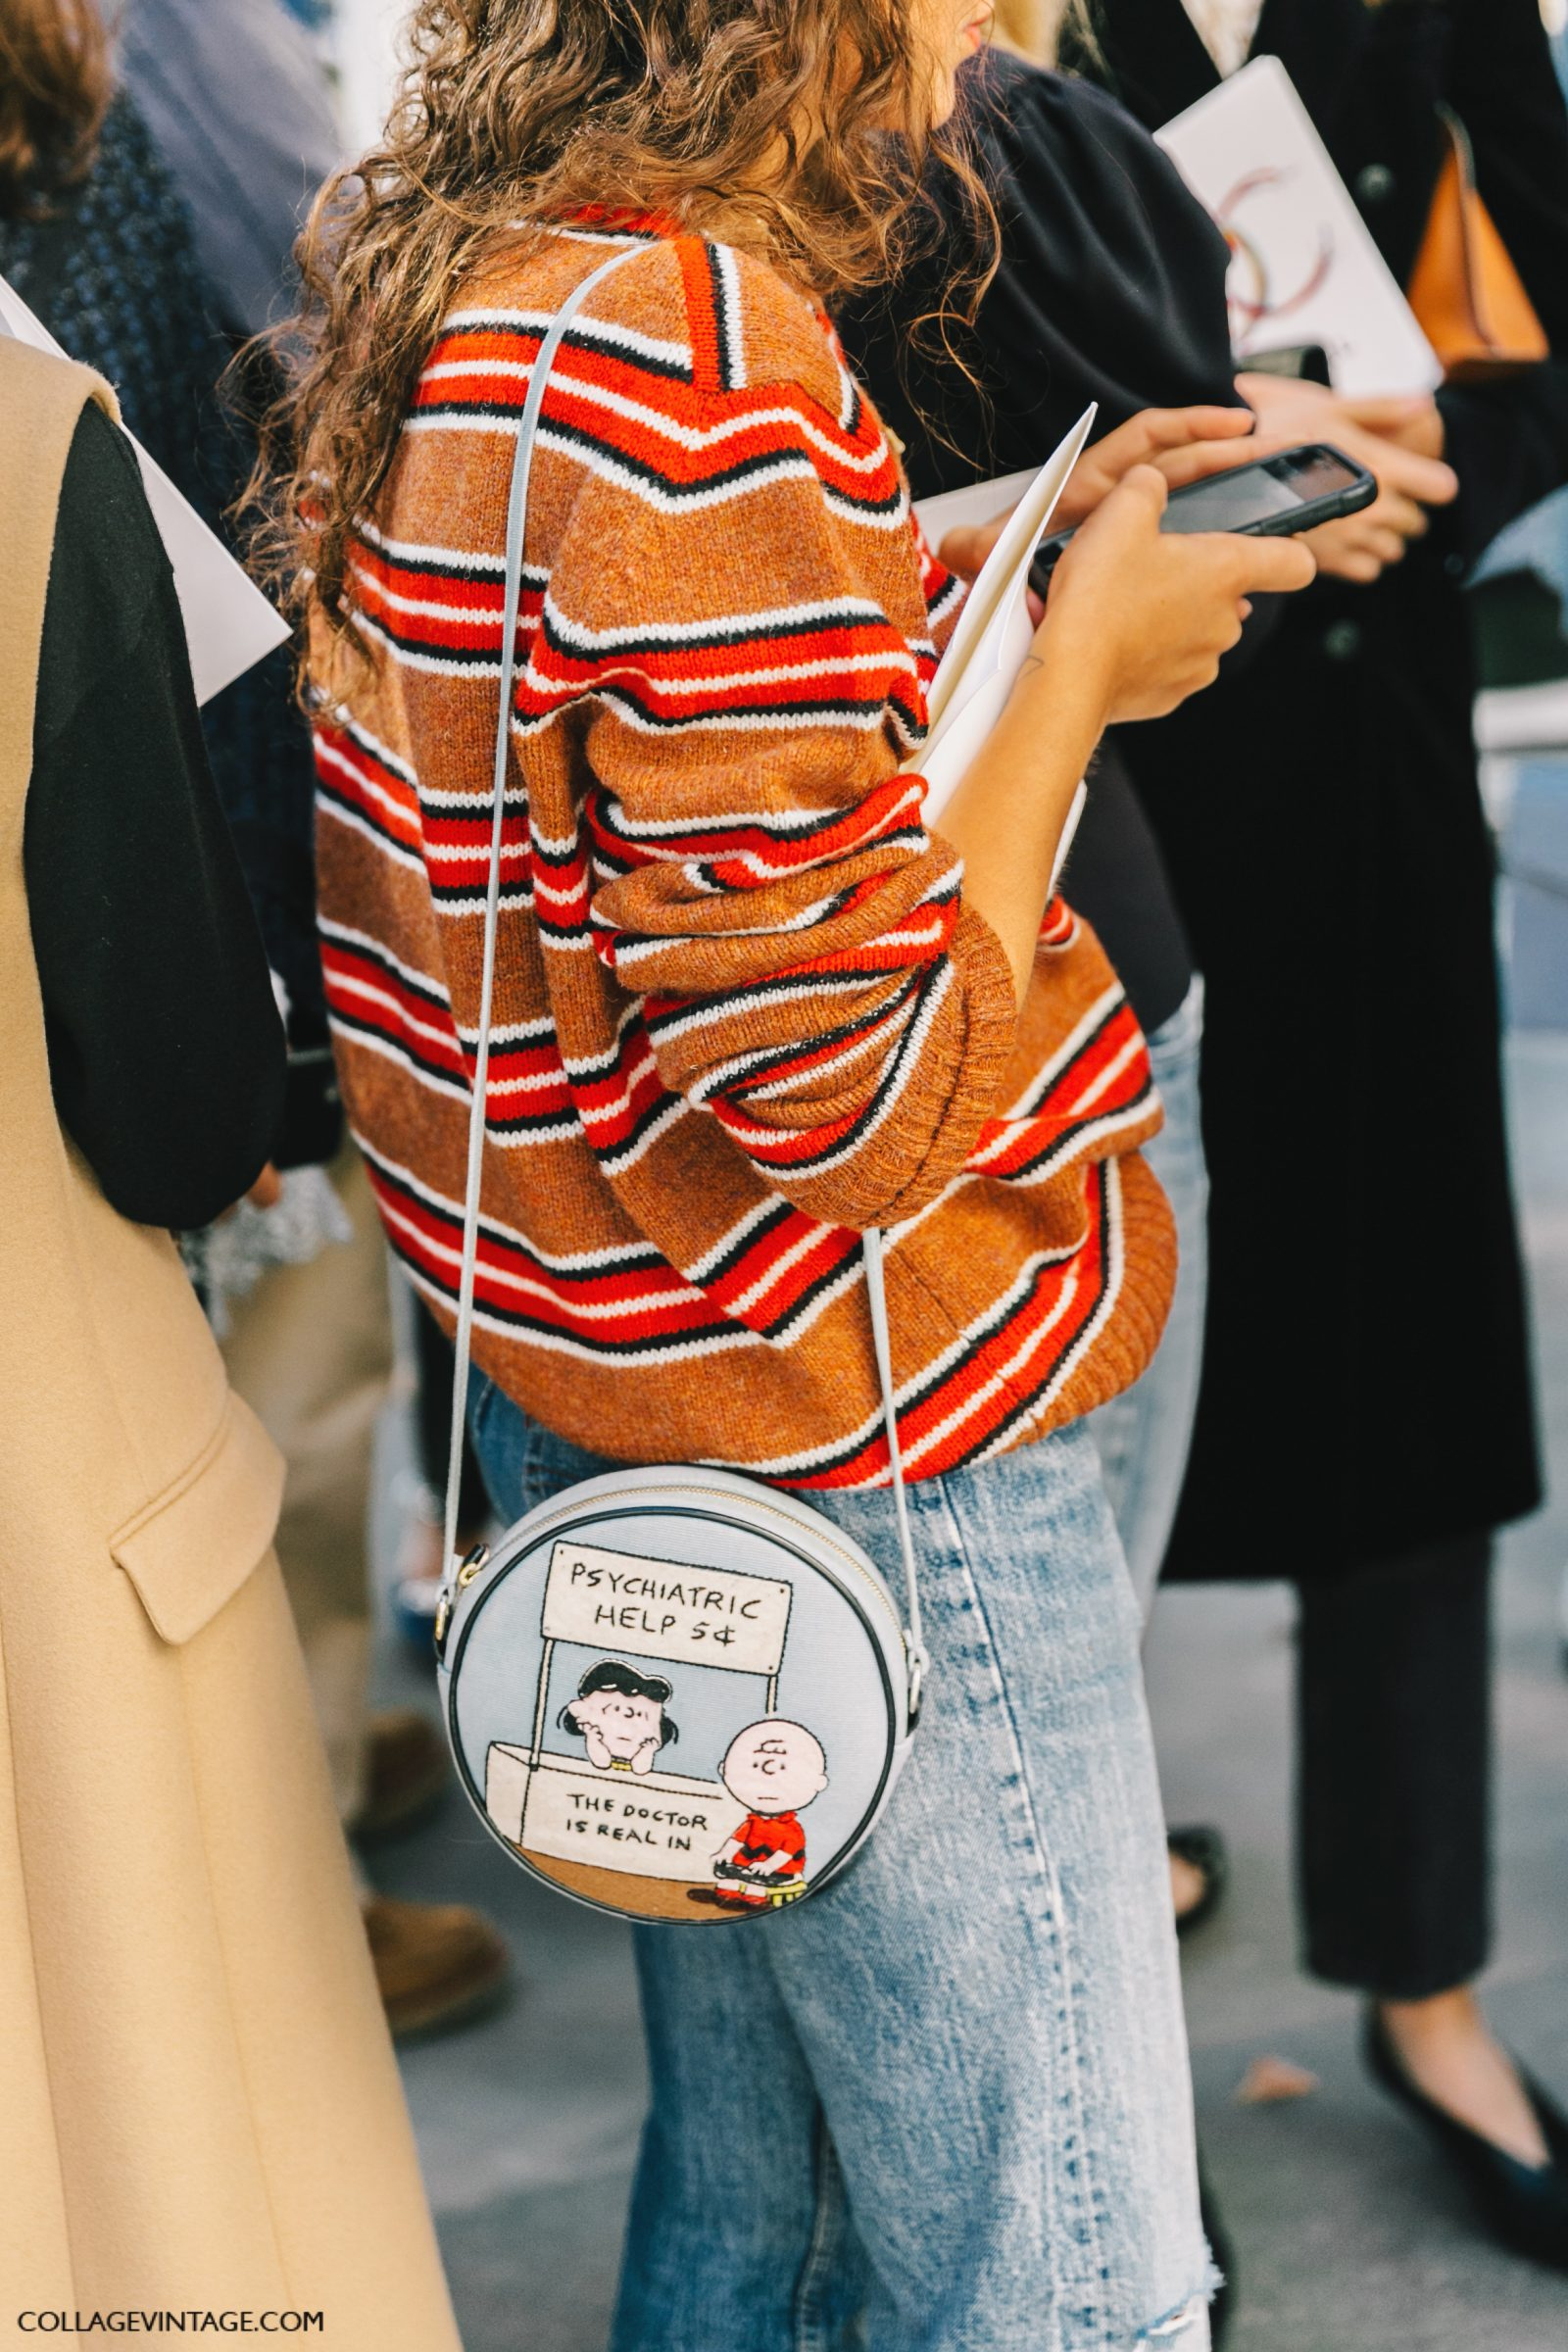 PFW-Paris_Fashion_Week_SS17-Street_Style-Outfits-Collage_Vintage-Chanel-Ellery-39-1600x2400.jpg